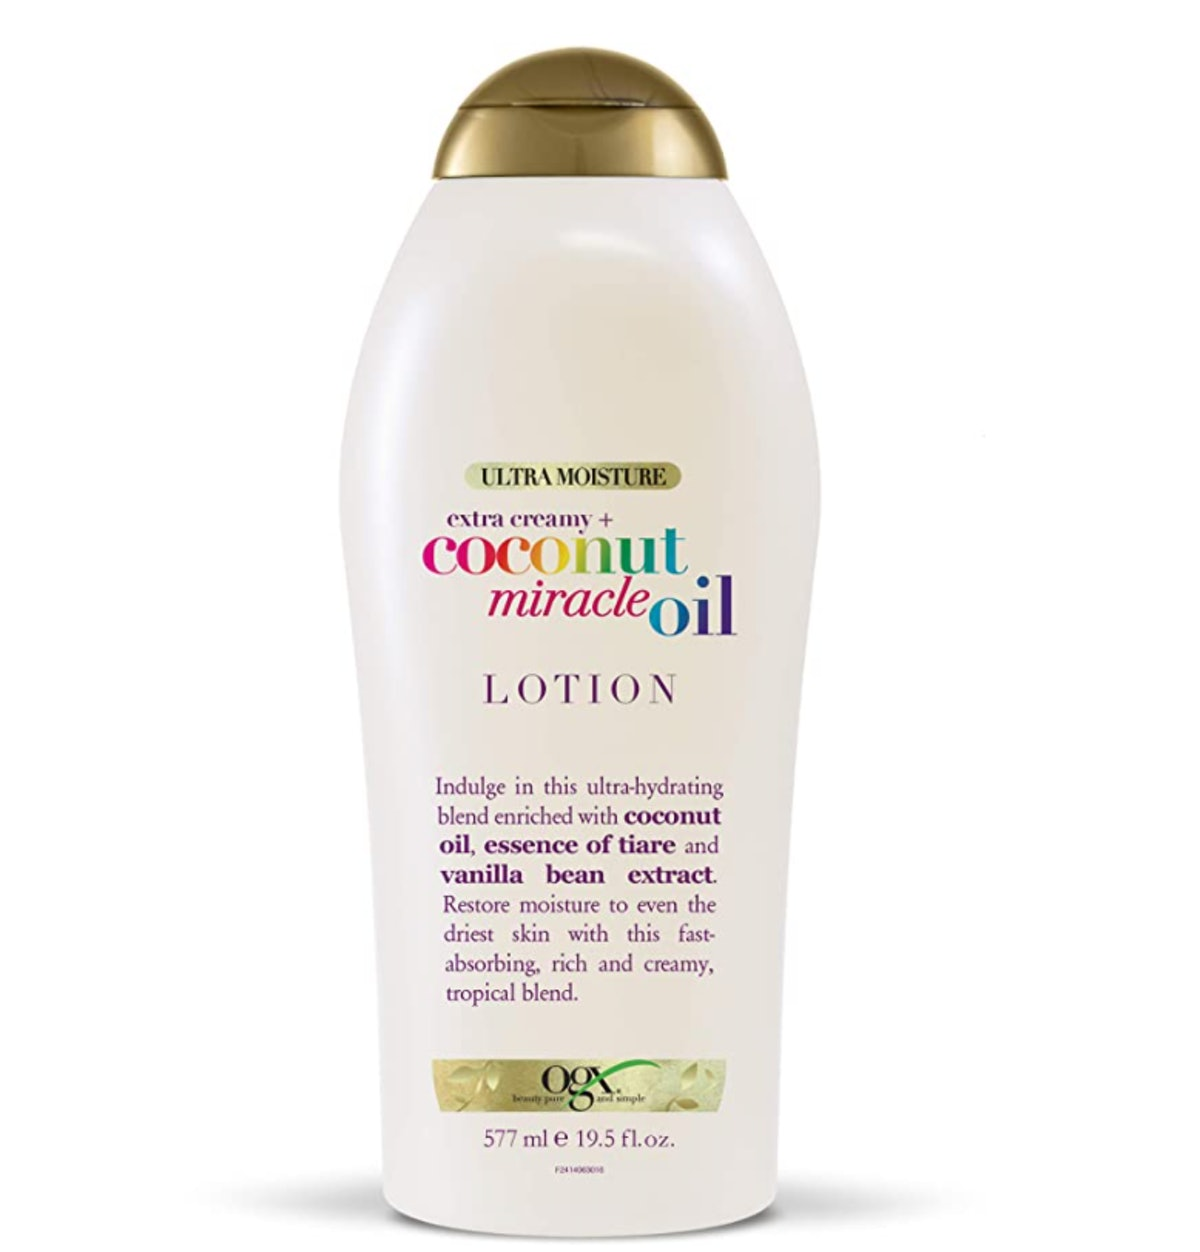 OGX Extra Creamy + Coconut Miracle Oil Body Lotion